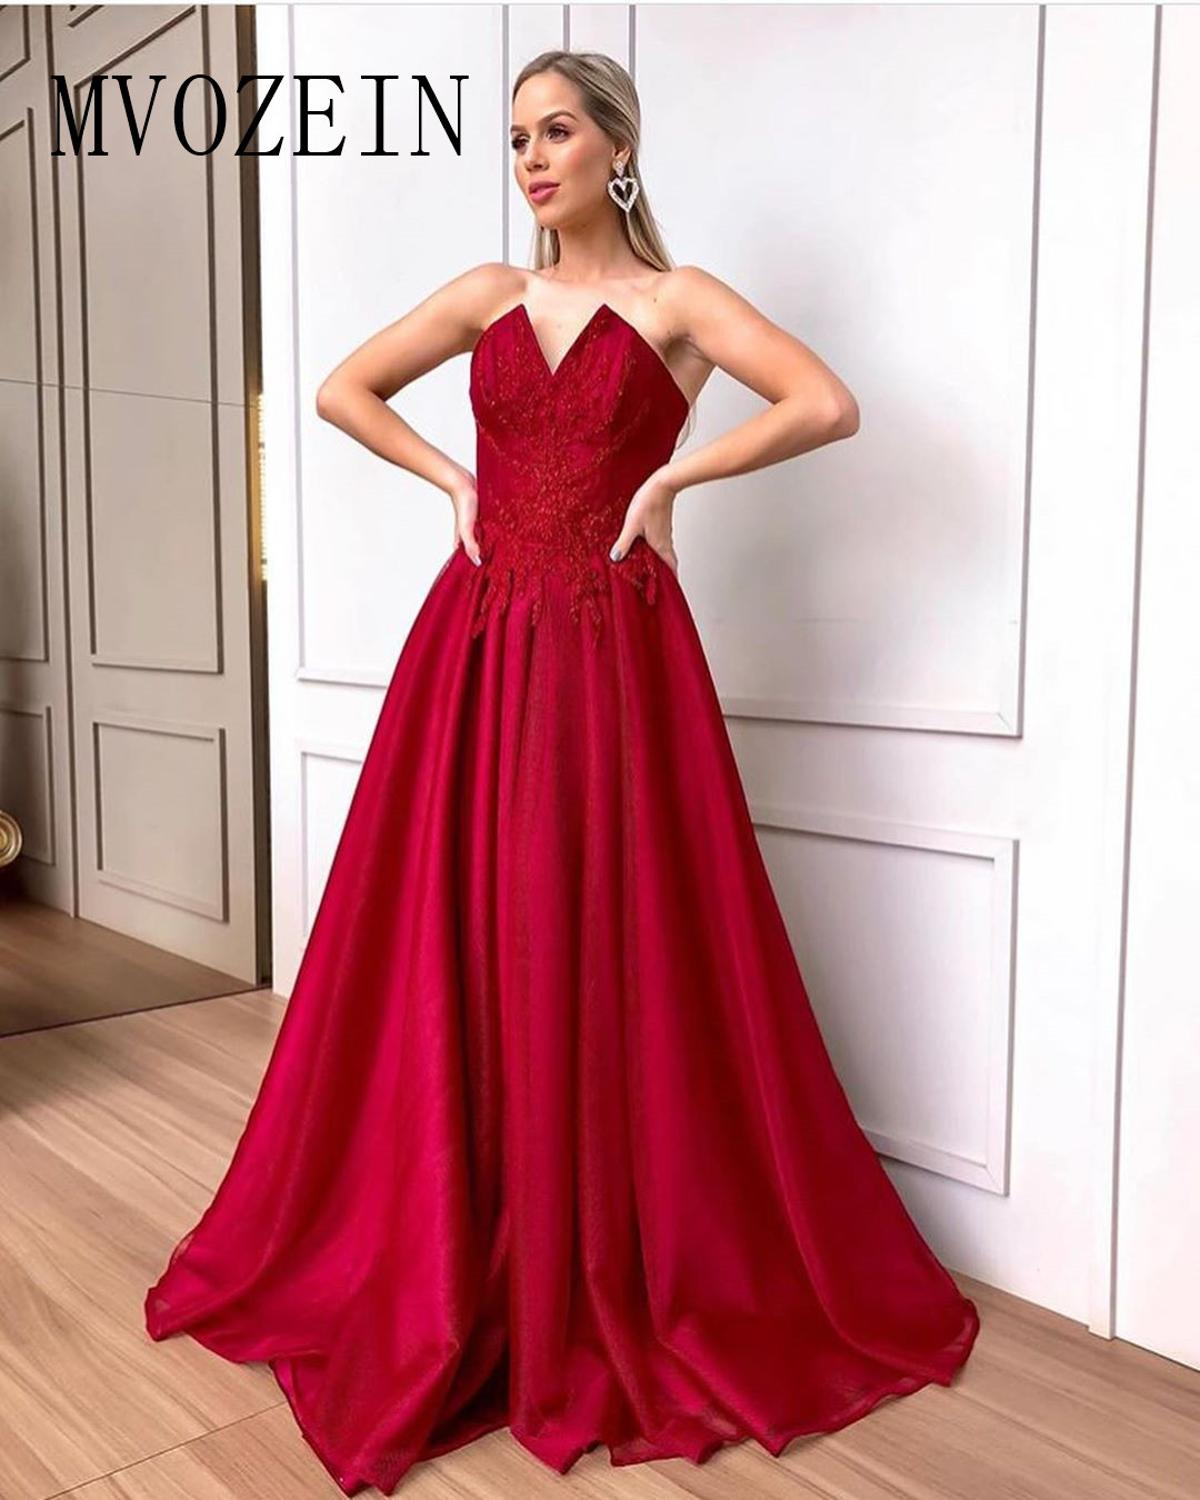 Dark Red Evening Dress Satin A-Line Lace Appliques Special Formal Gowns Evening Dresses Long Abendkleider